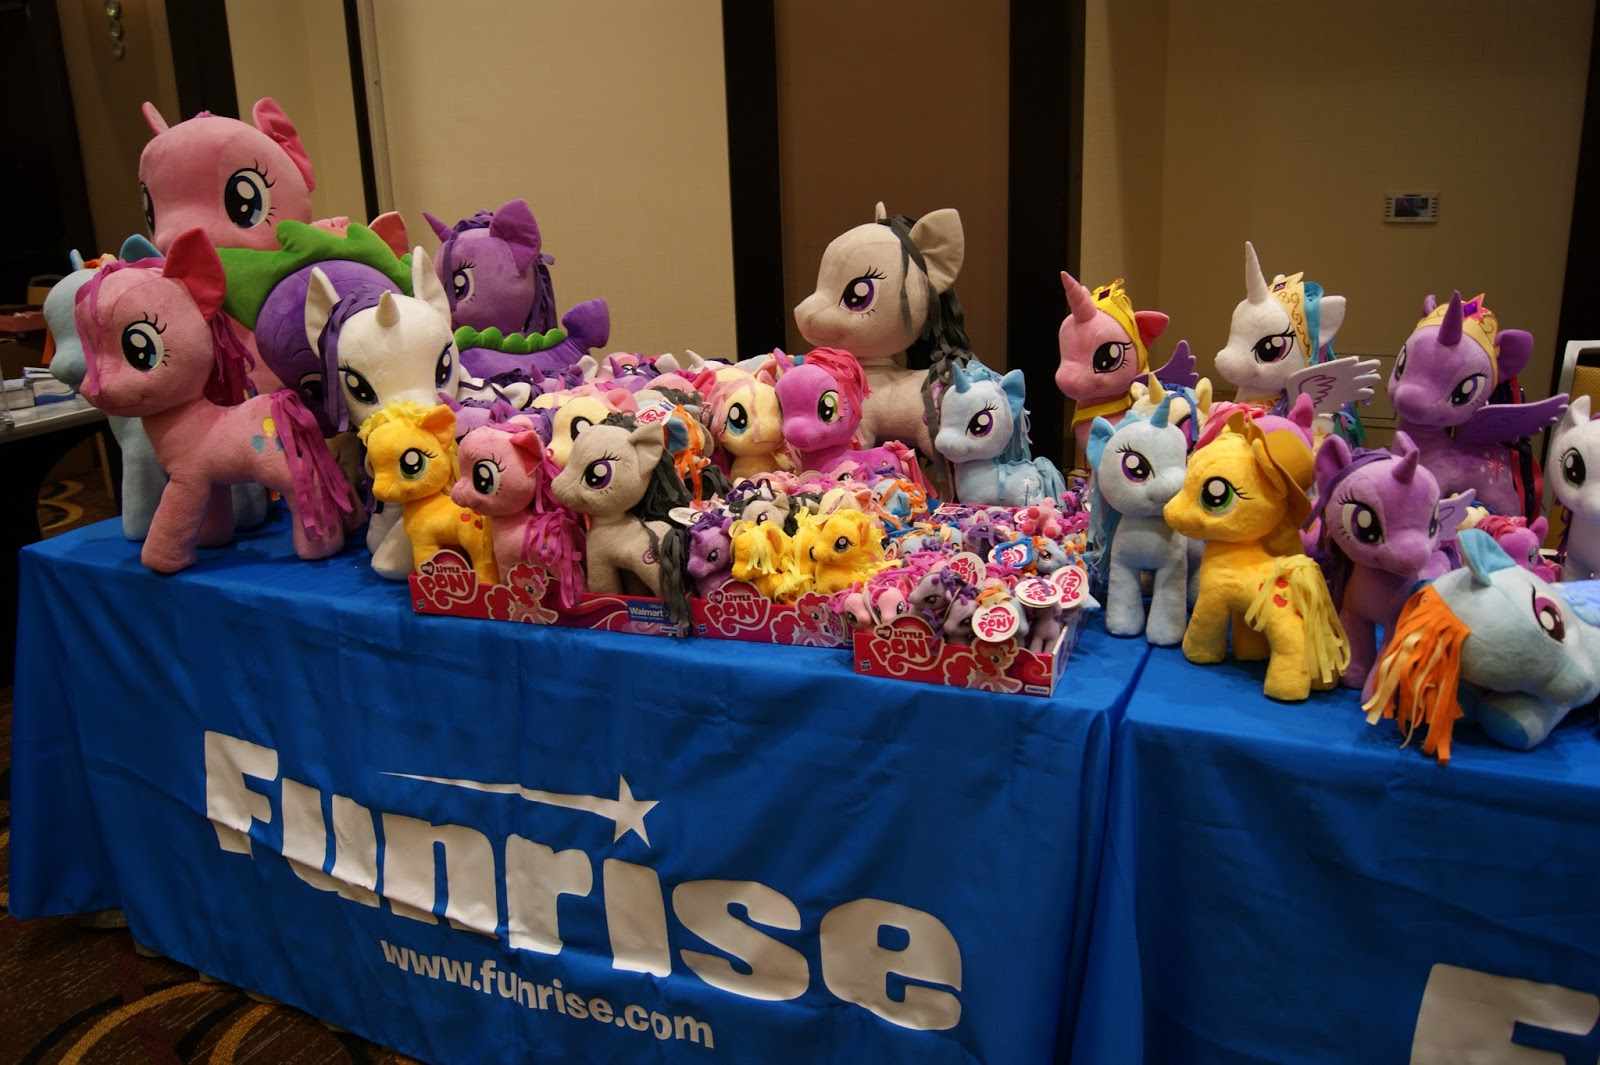 Guide To All Funrise My Little Pony Plushies Mlp Merch